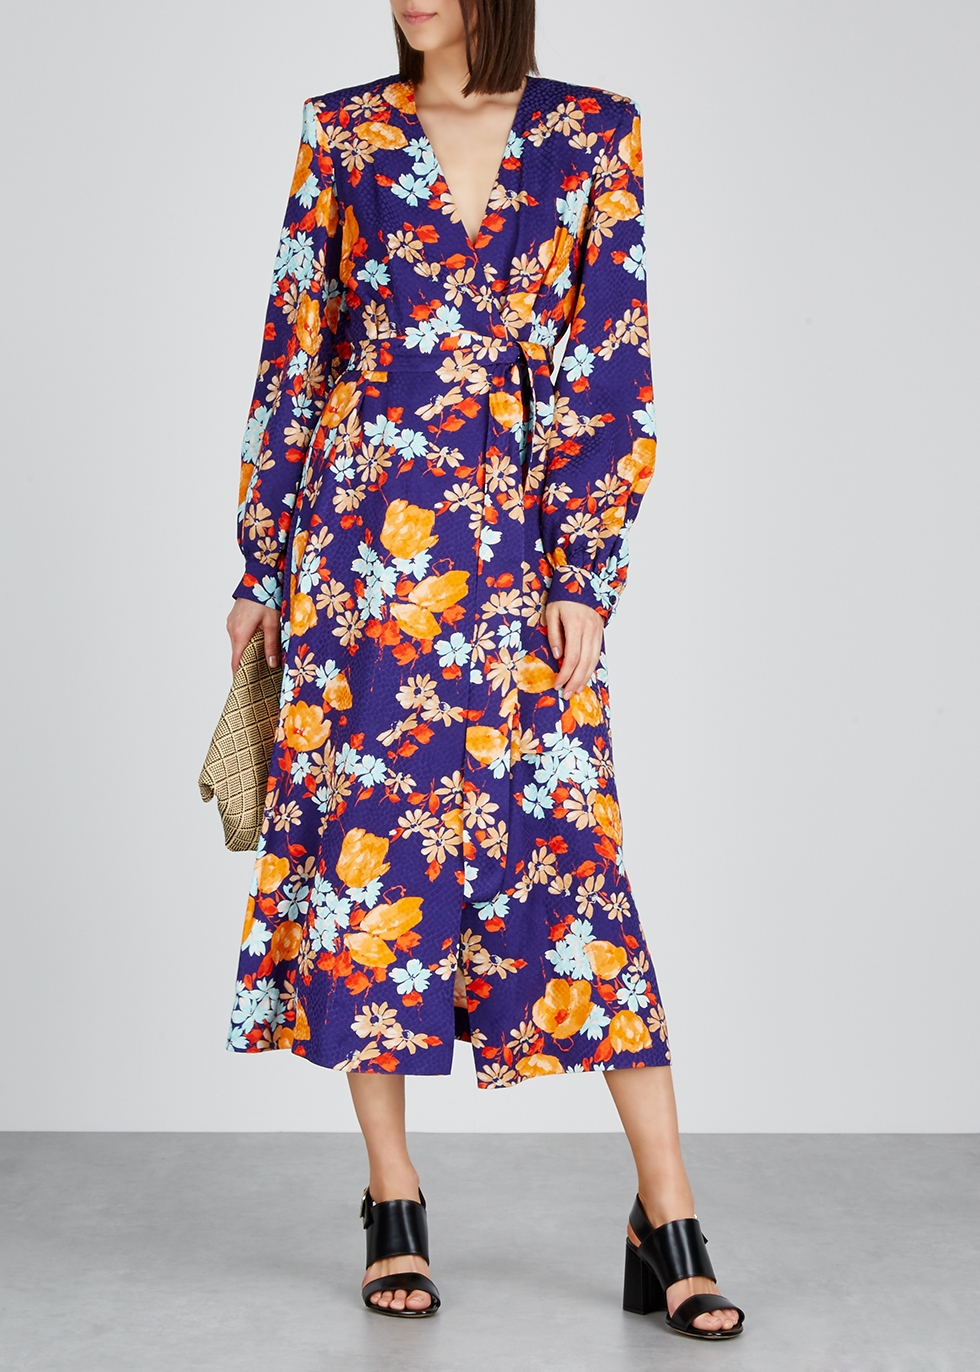 Dove floral-print jacquard midi dress - Dries Van Noten